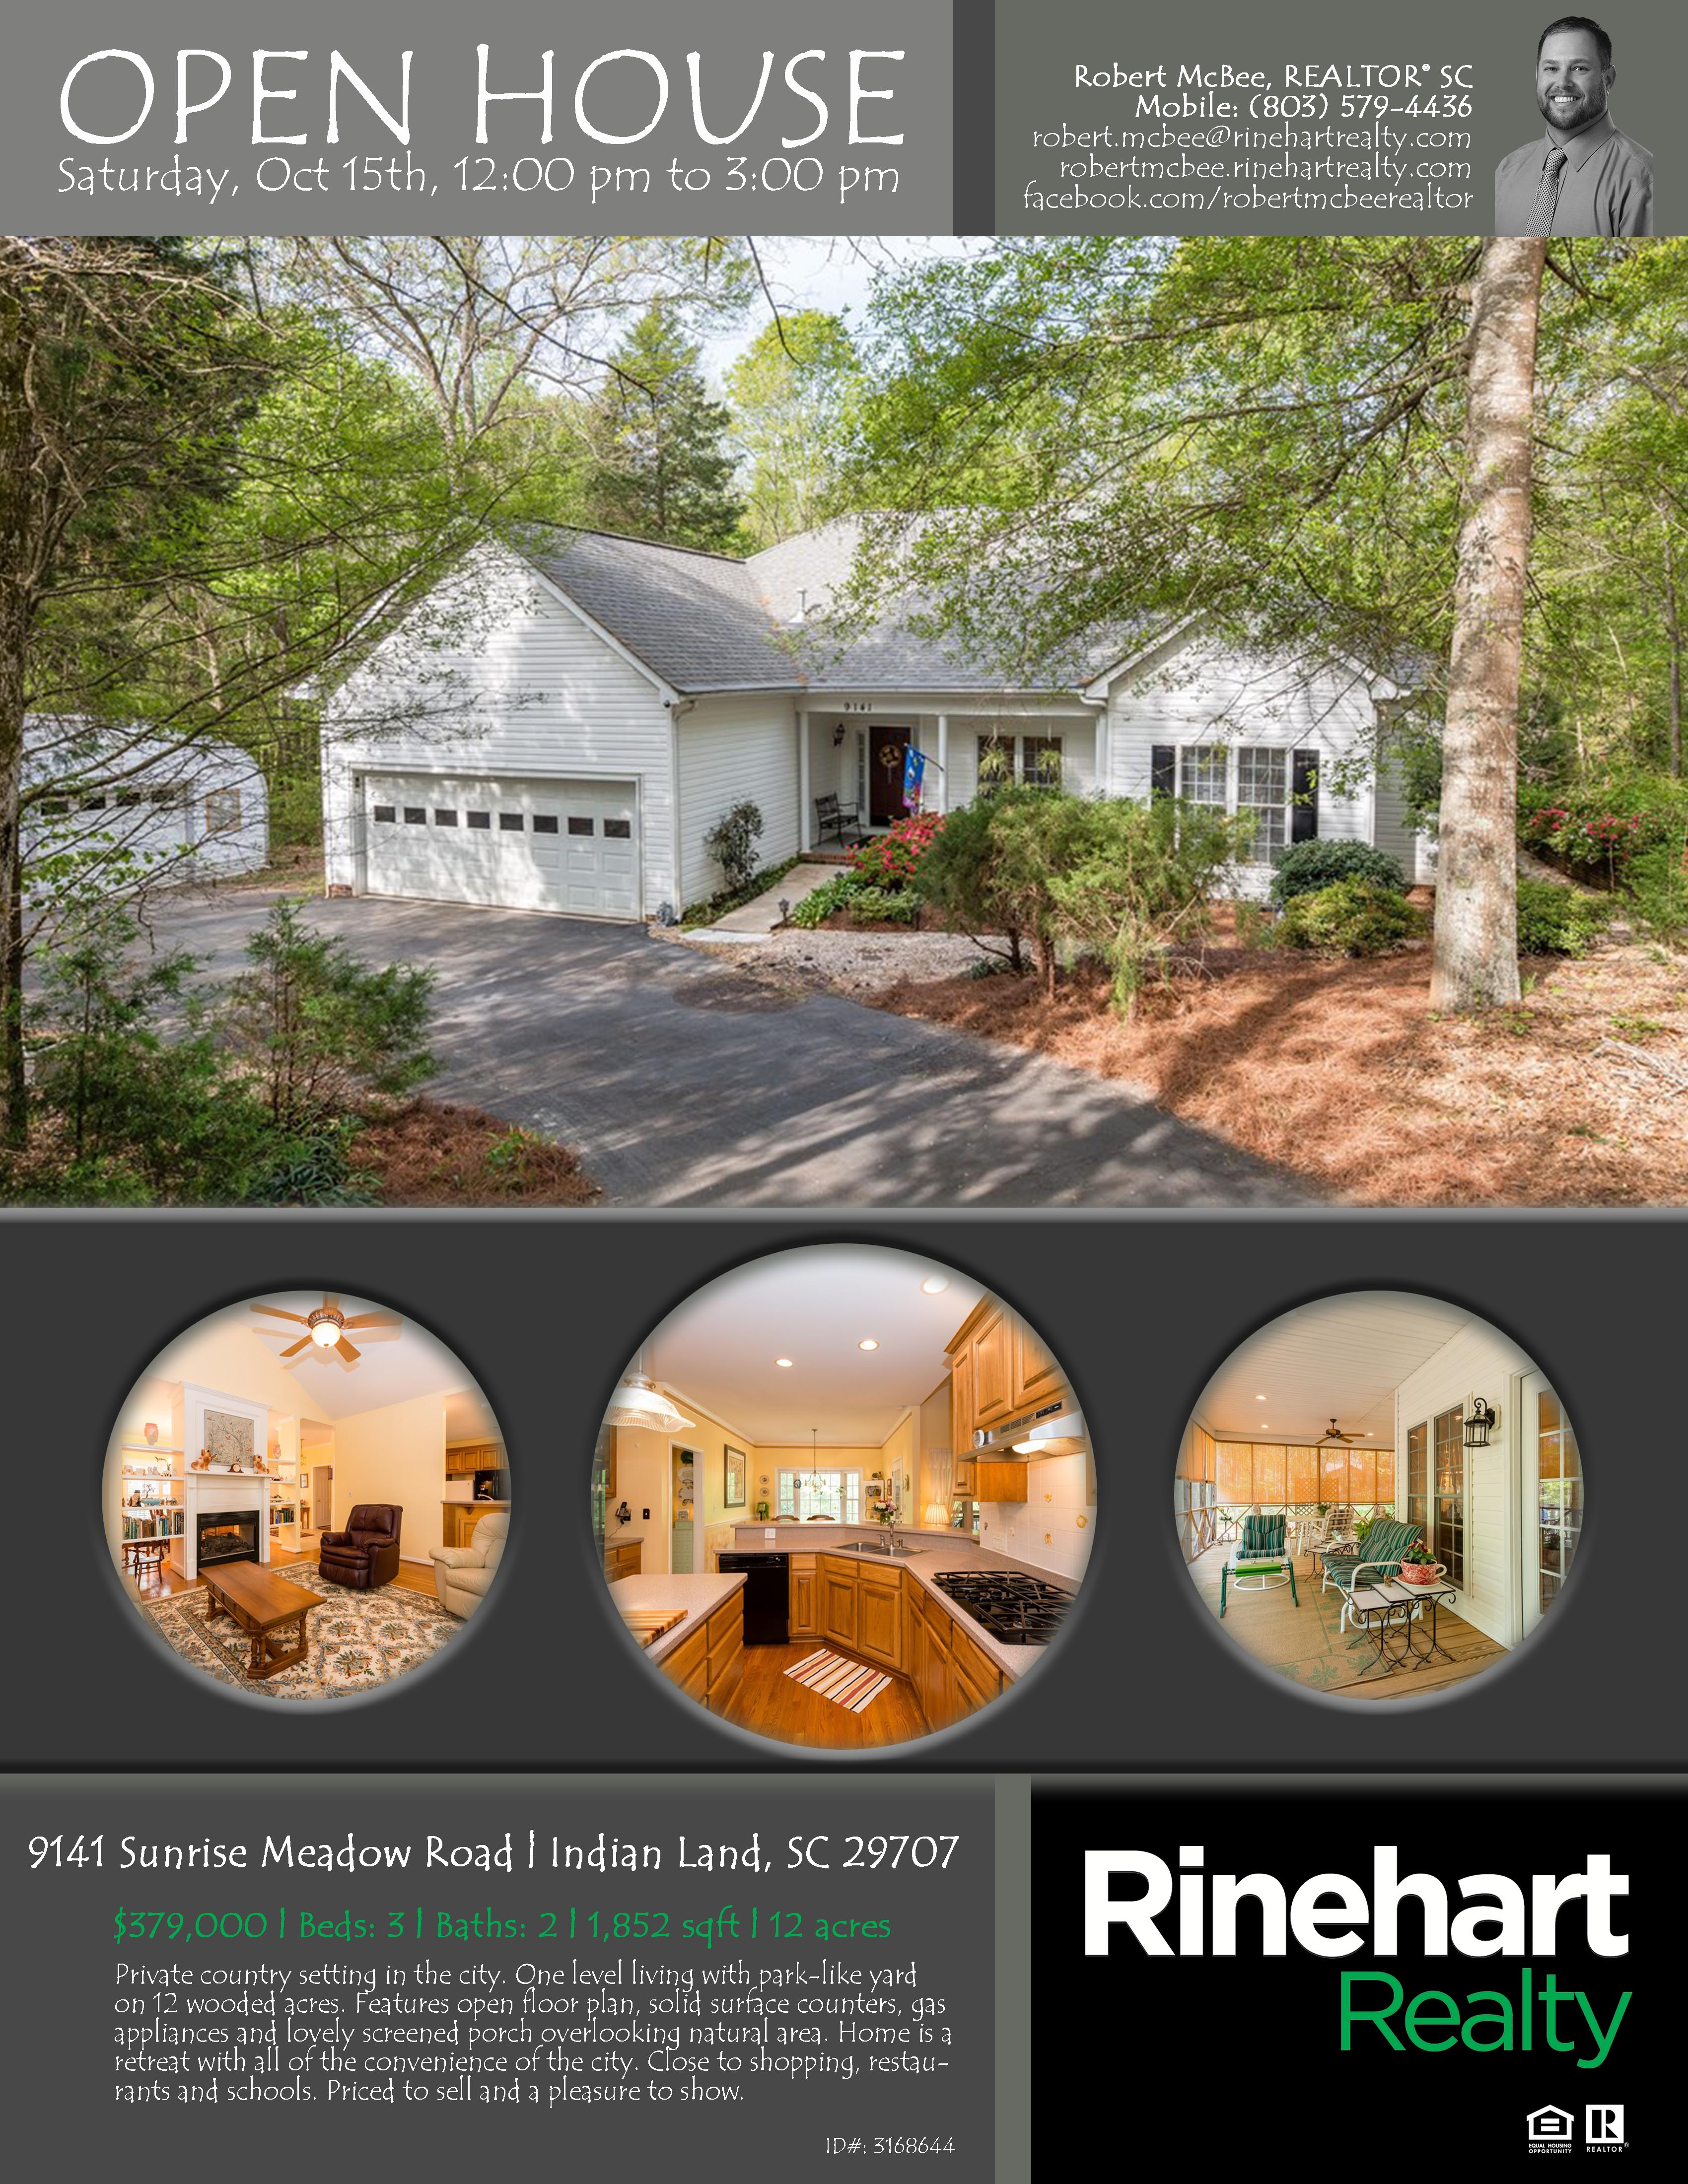 OPEN HOUSE 10.17_REDUCED